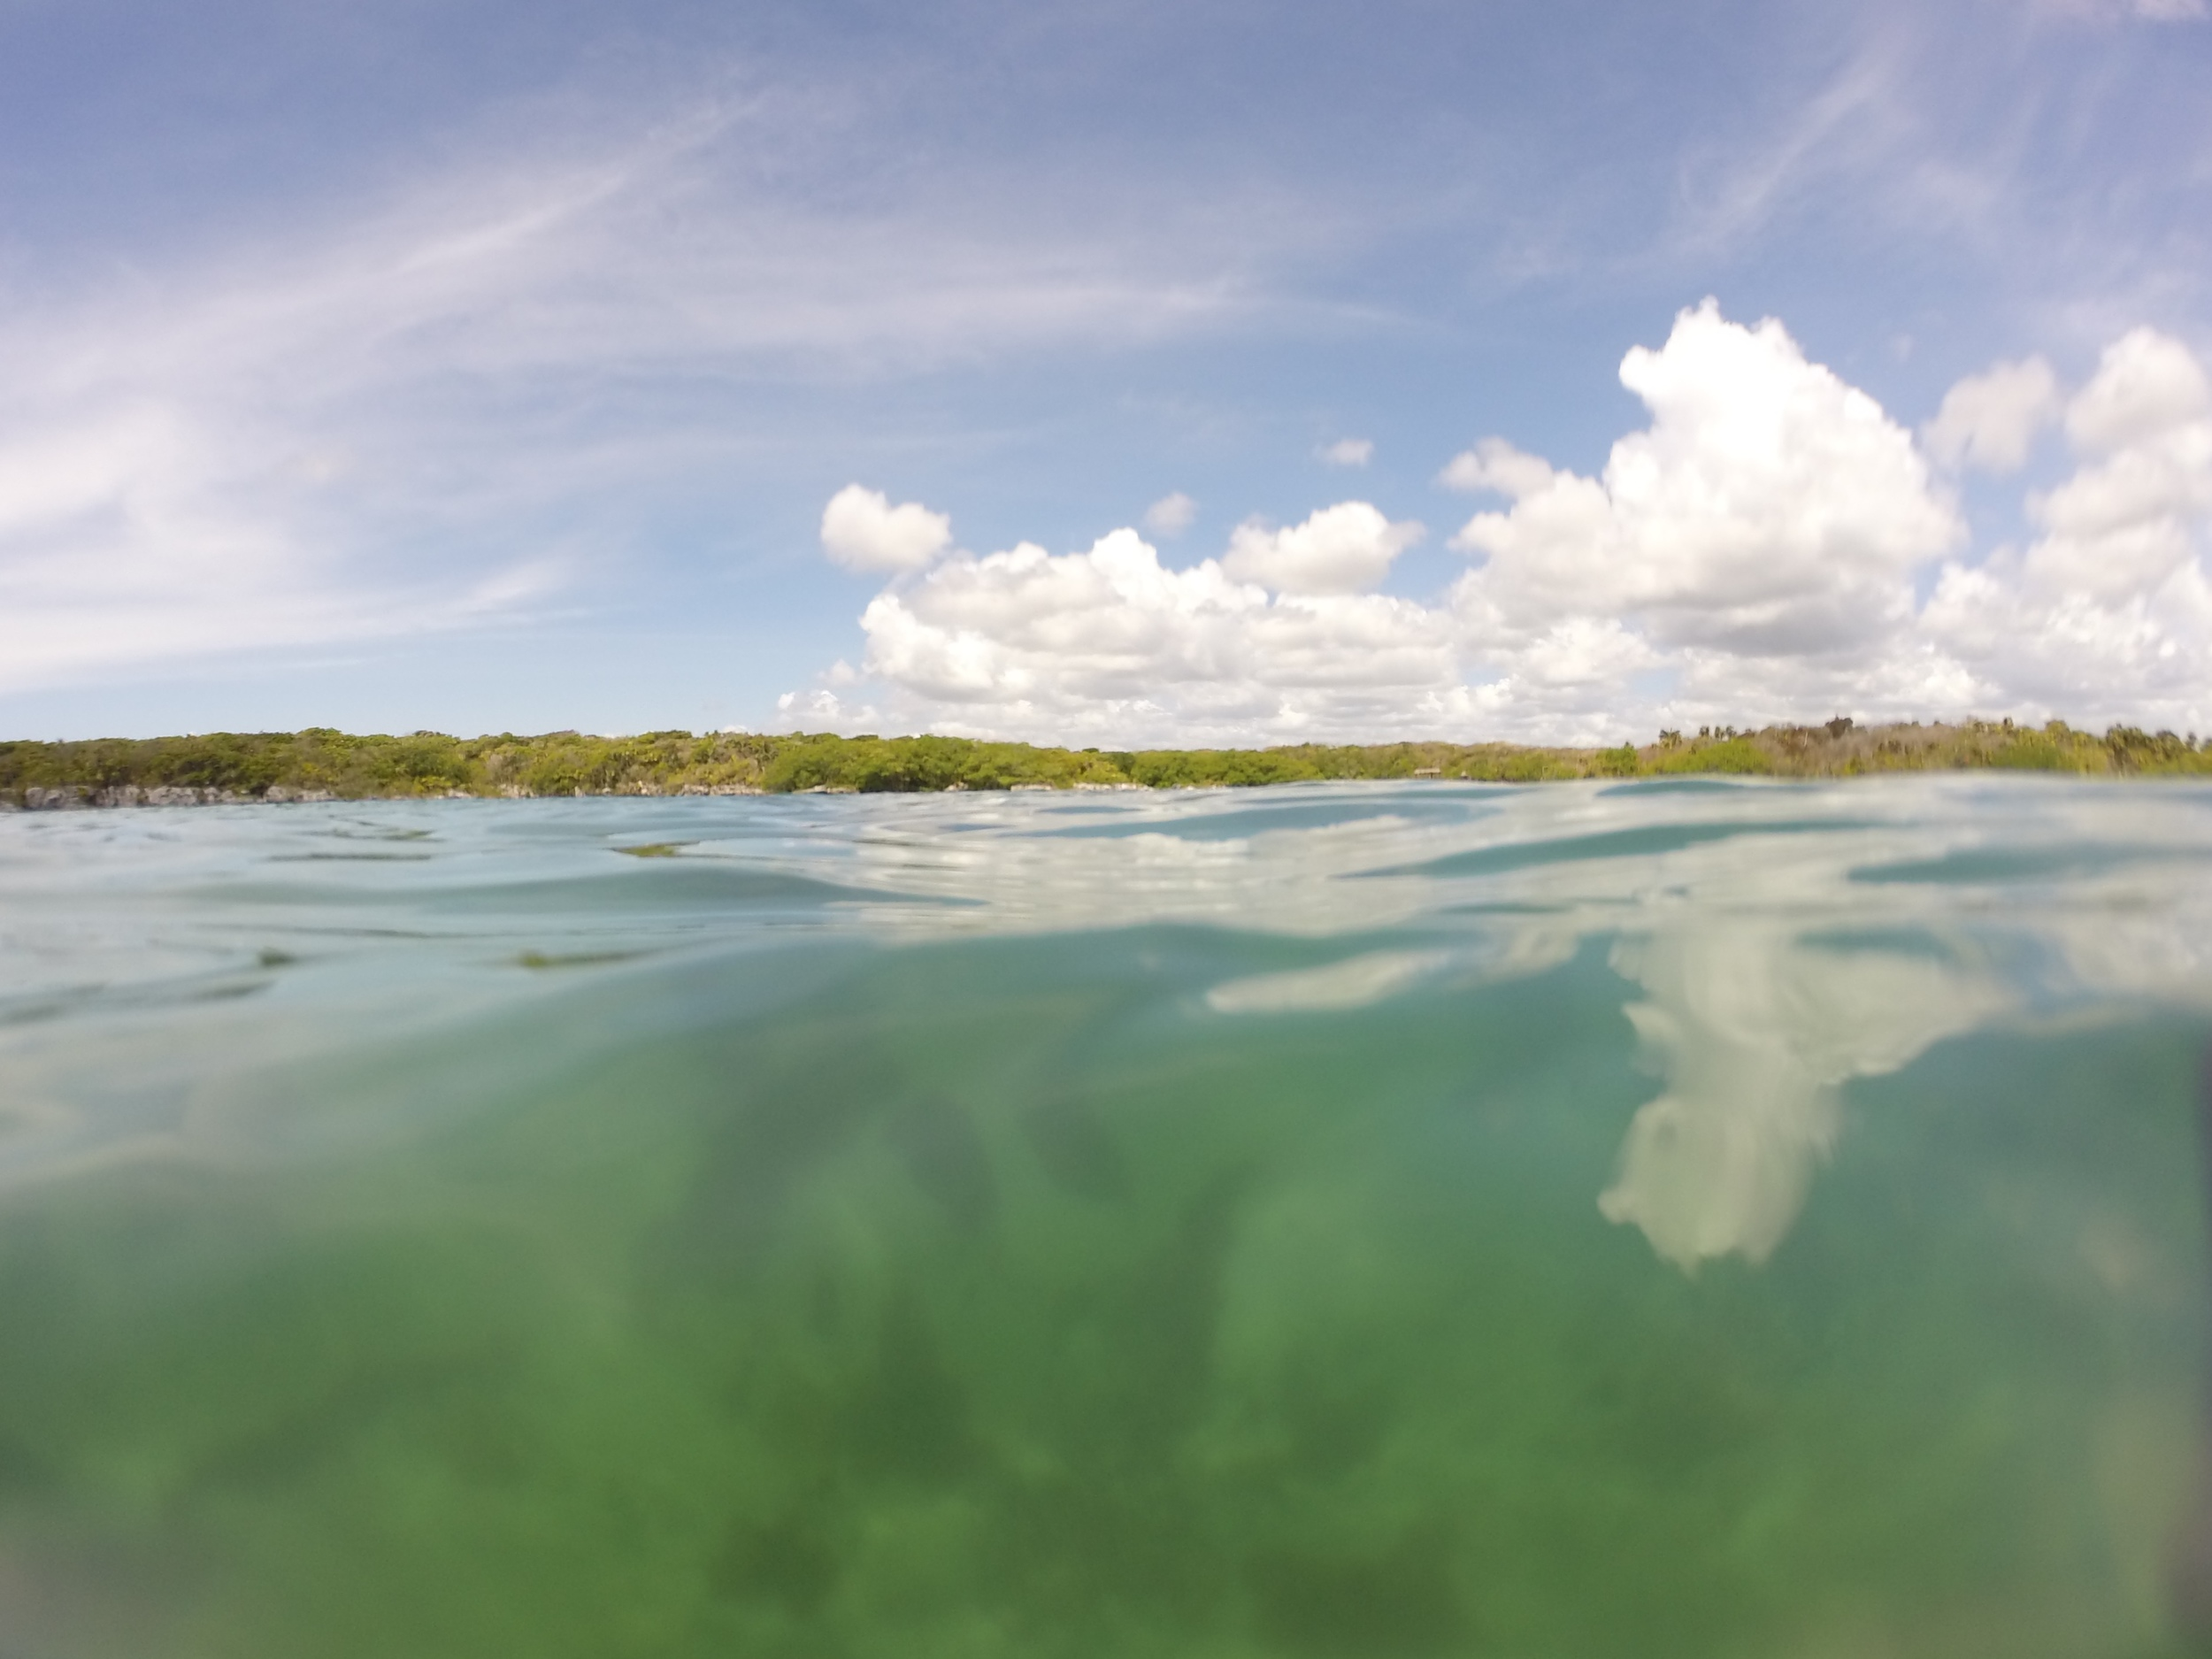 Green waters and puffy clouds at Xel Ha lagoon, Mexico.